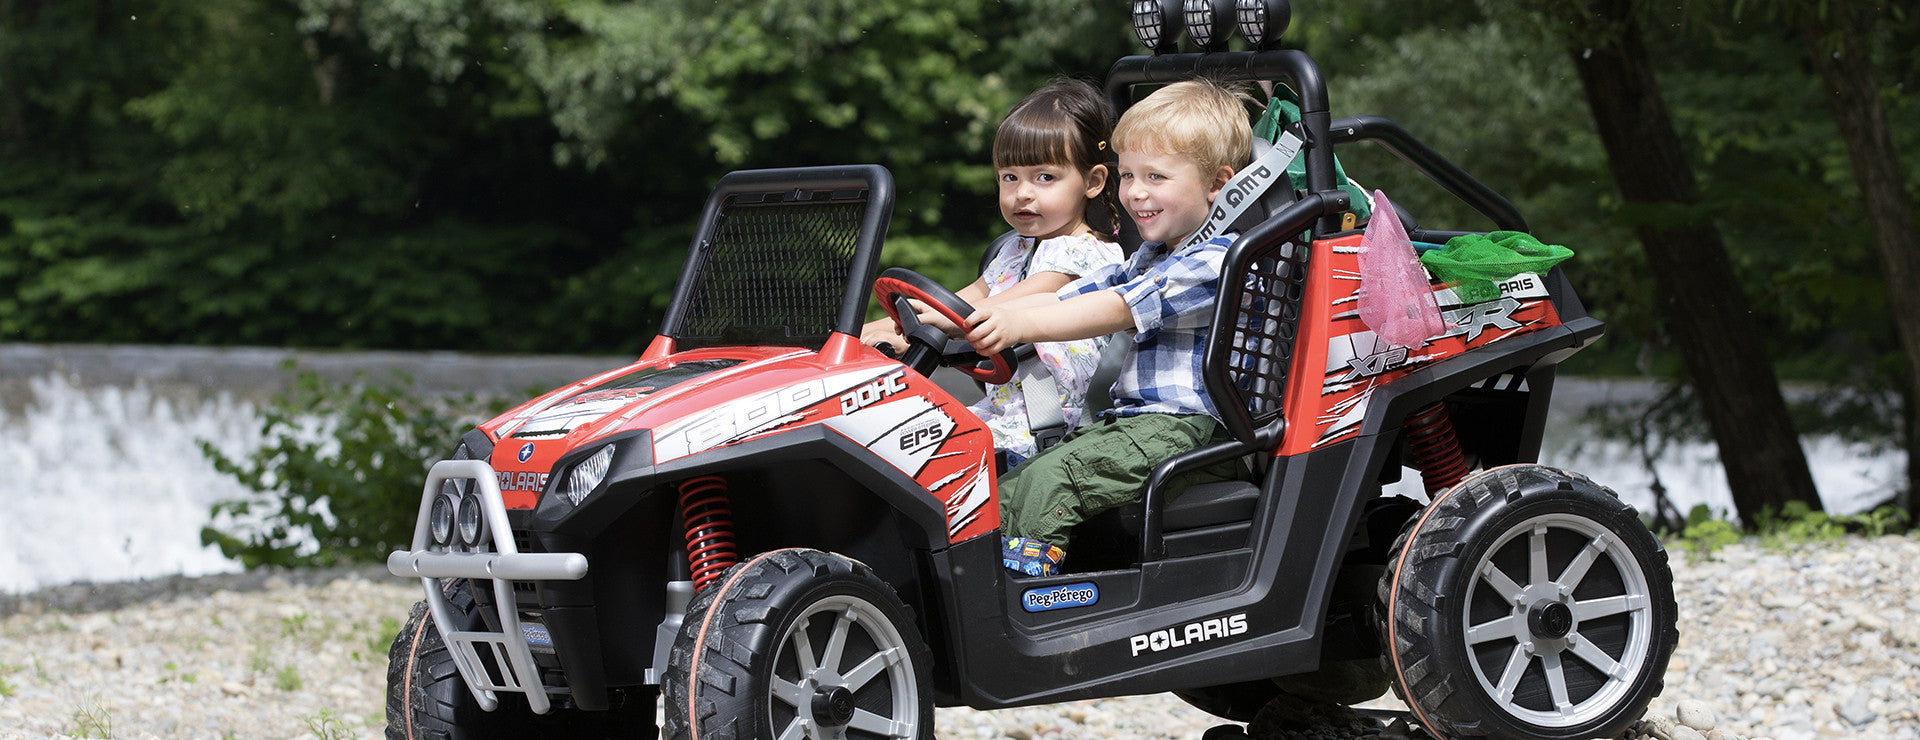 POLARIS RANGER RZR Red Ride On Kids Off Road Car